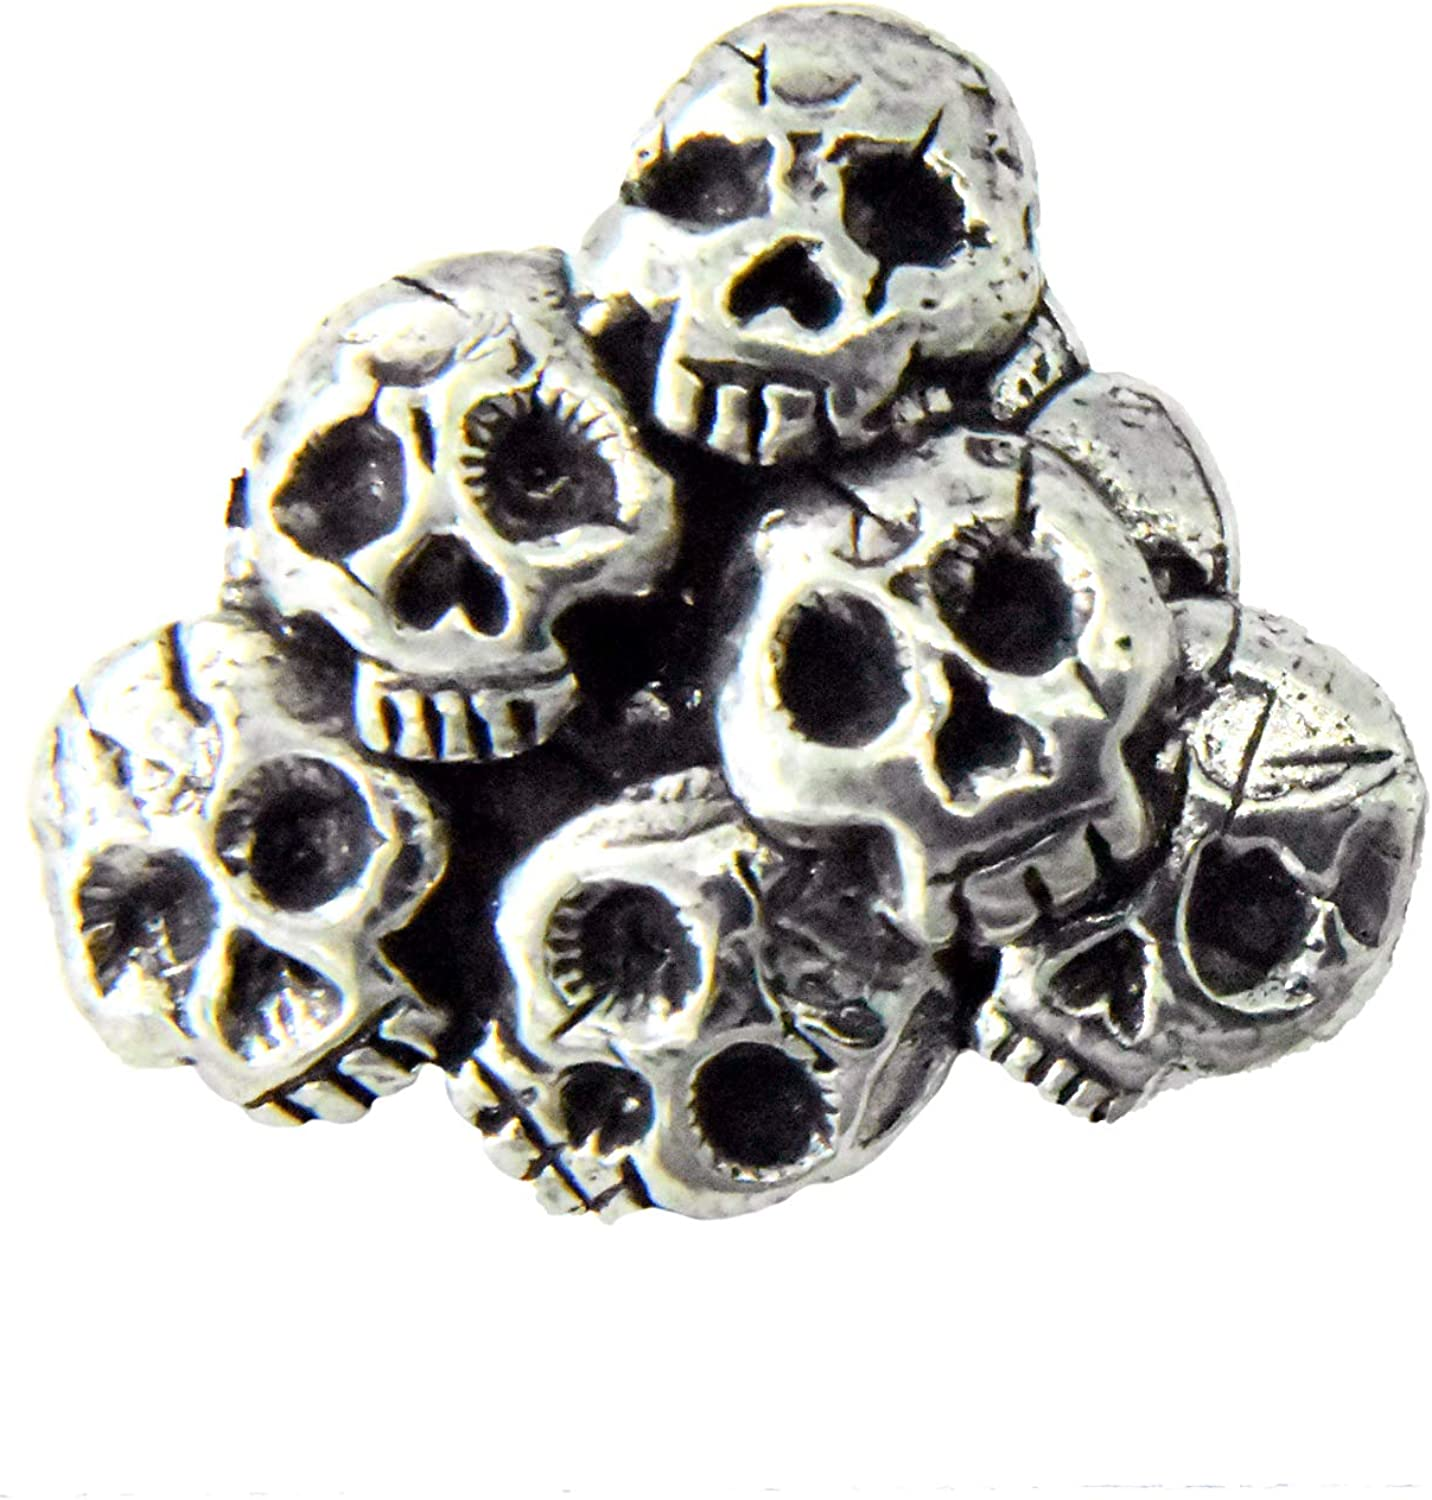 Jewelry G014 Skull Pile Pewter Lapel Pin Brooch